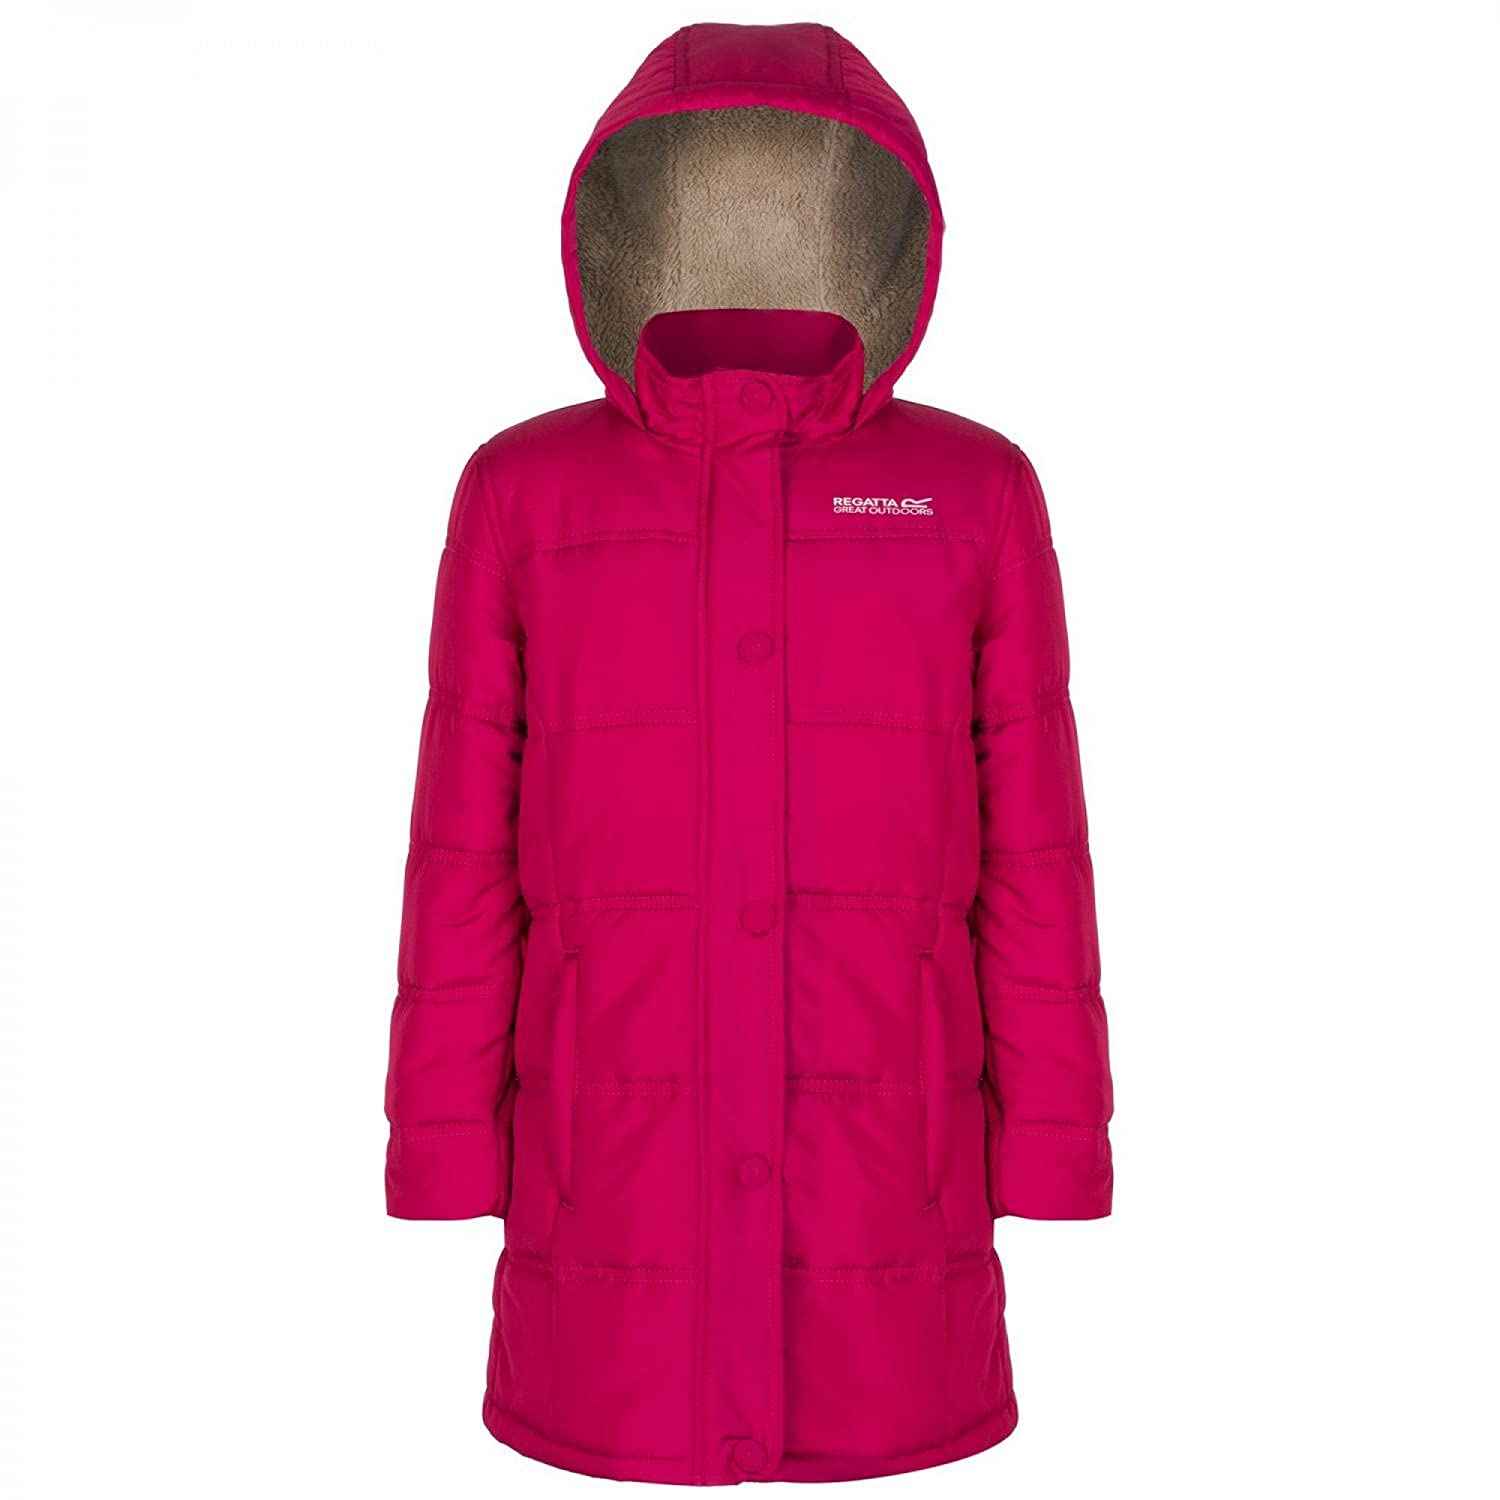 Regatta Outdoors Great Outdoors Regatta - Chaqueta modelo Invierno Hill para niñas 035d4b